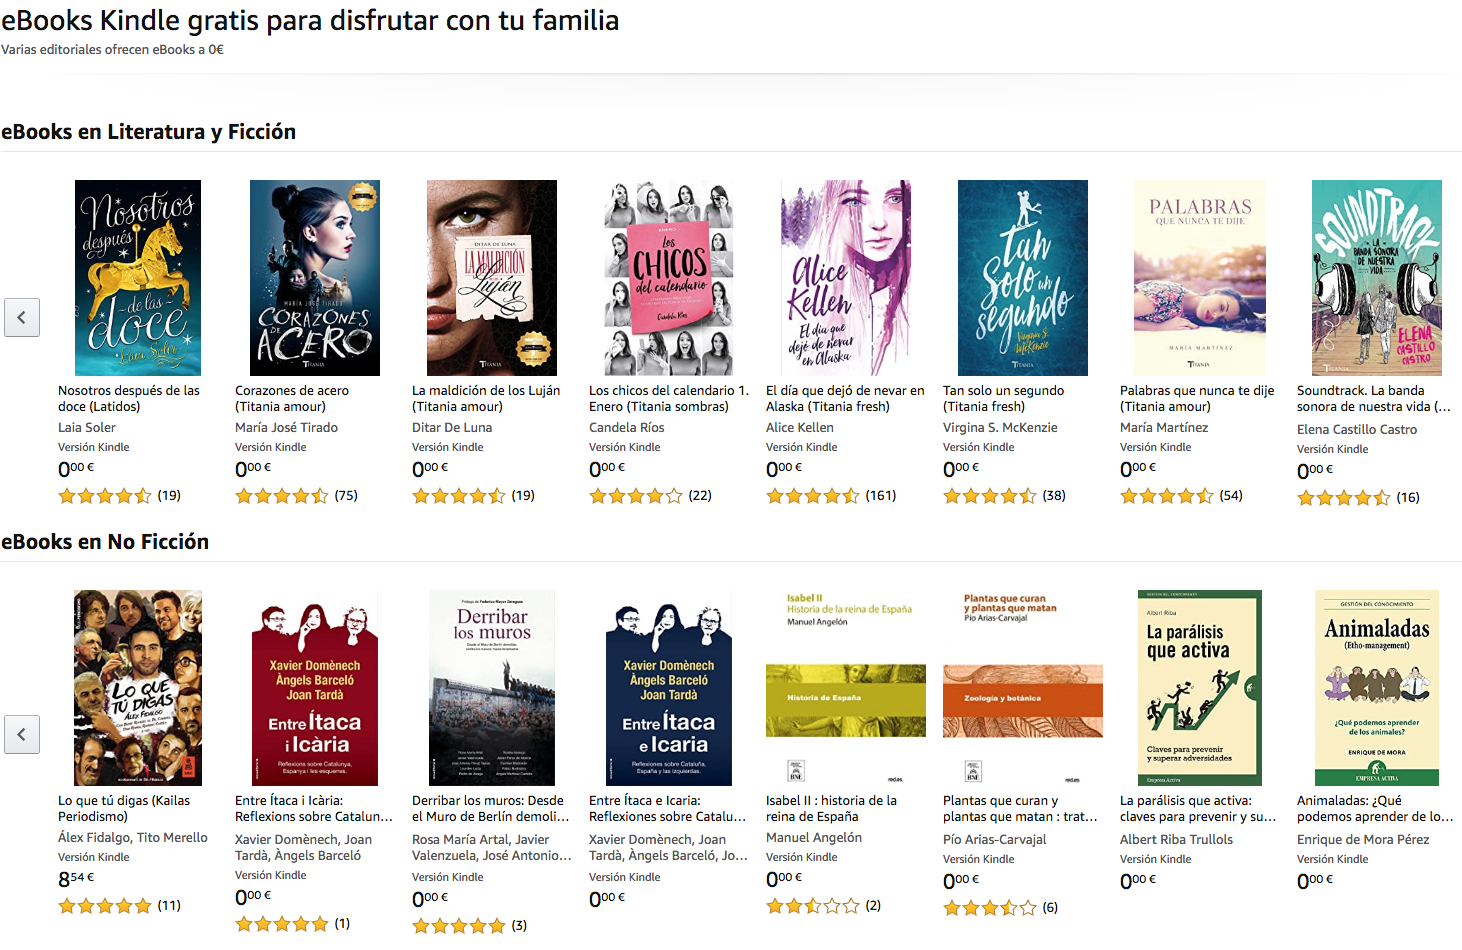 64 ebooks kindle gratis liberados de editoriales generosas